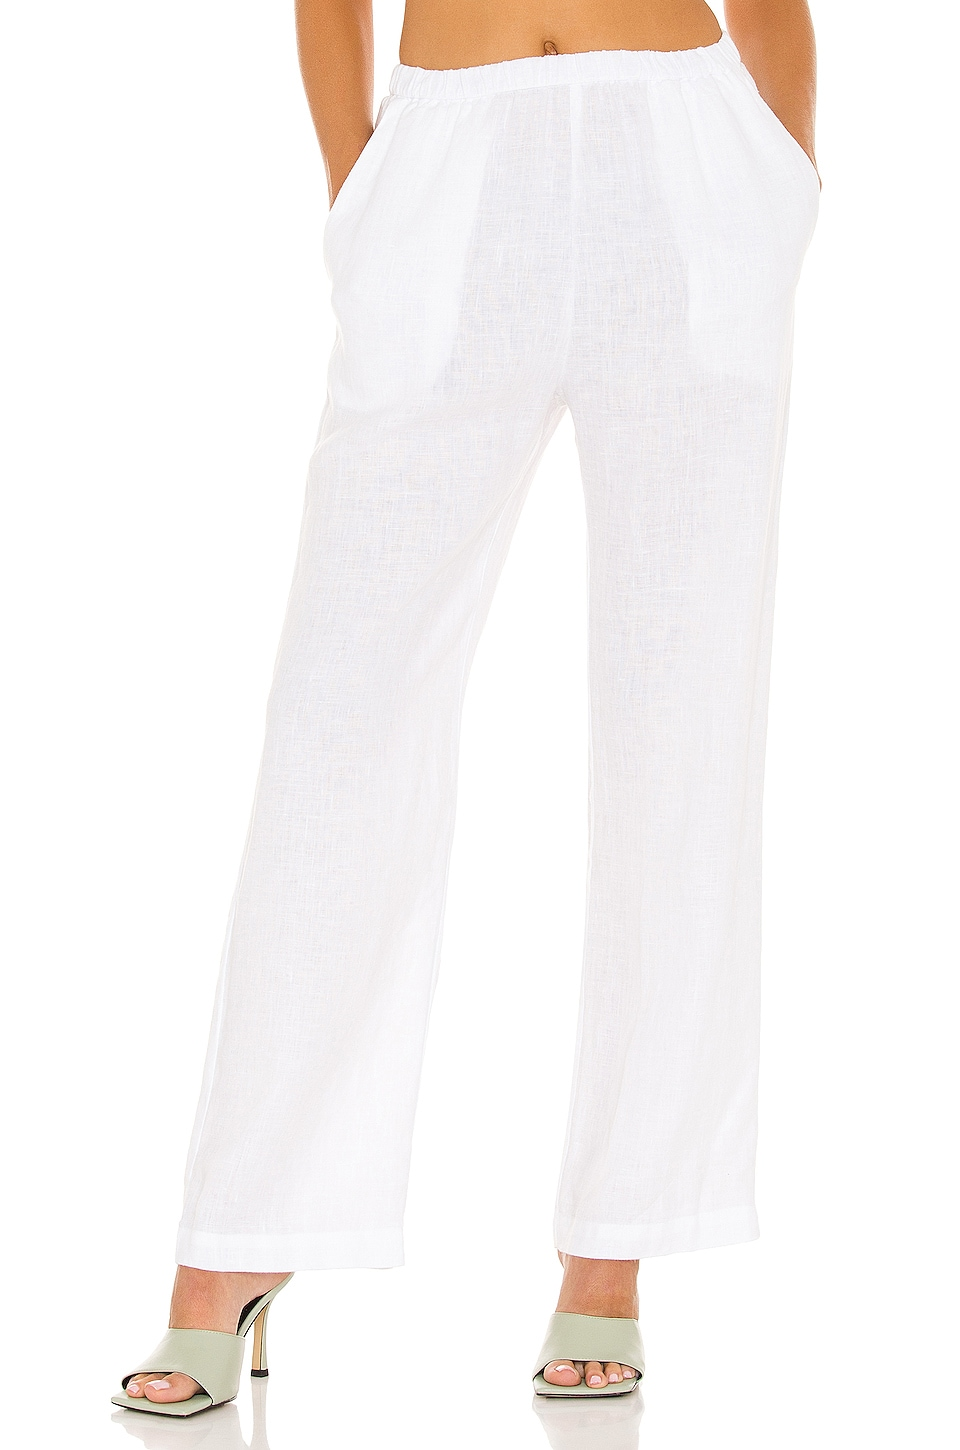 Enza Costa X REVOLVE Linen High Waisted Lounge Pant in White